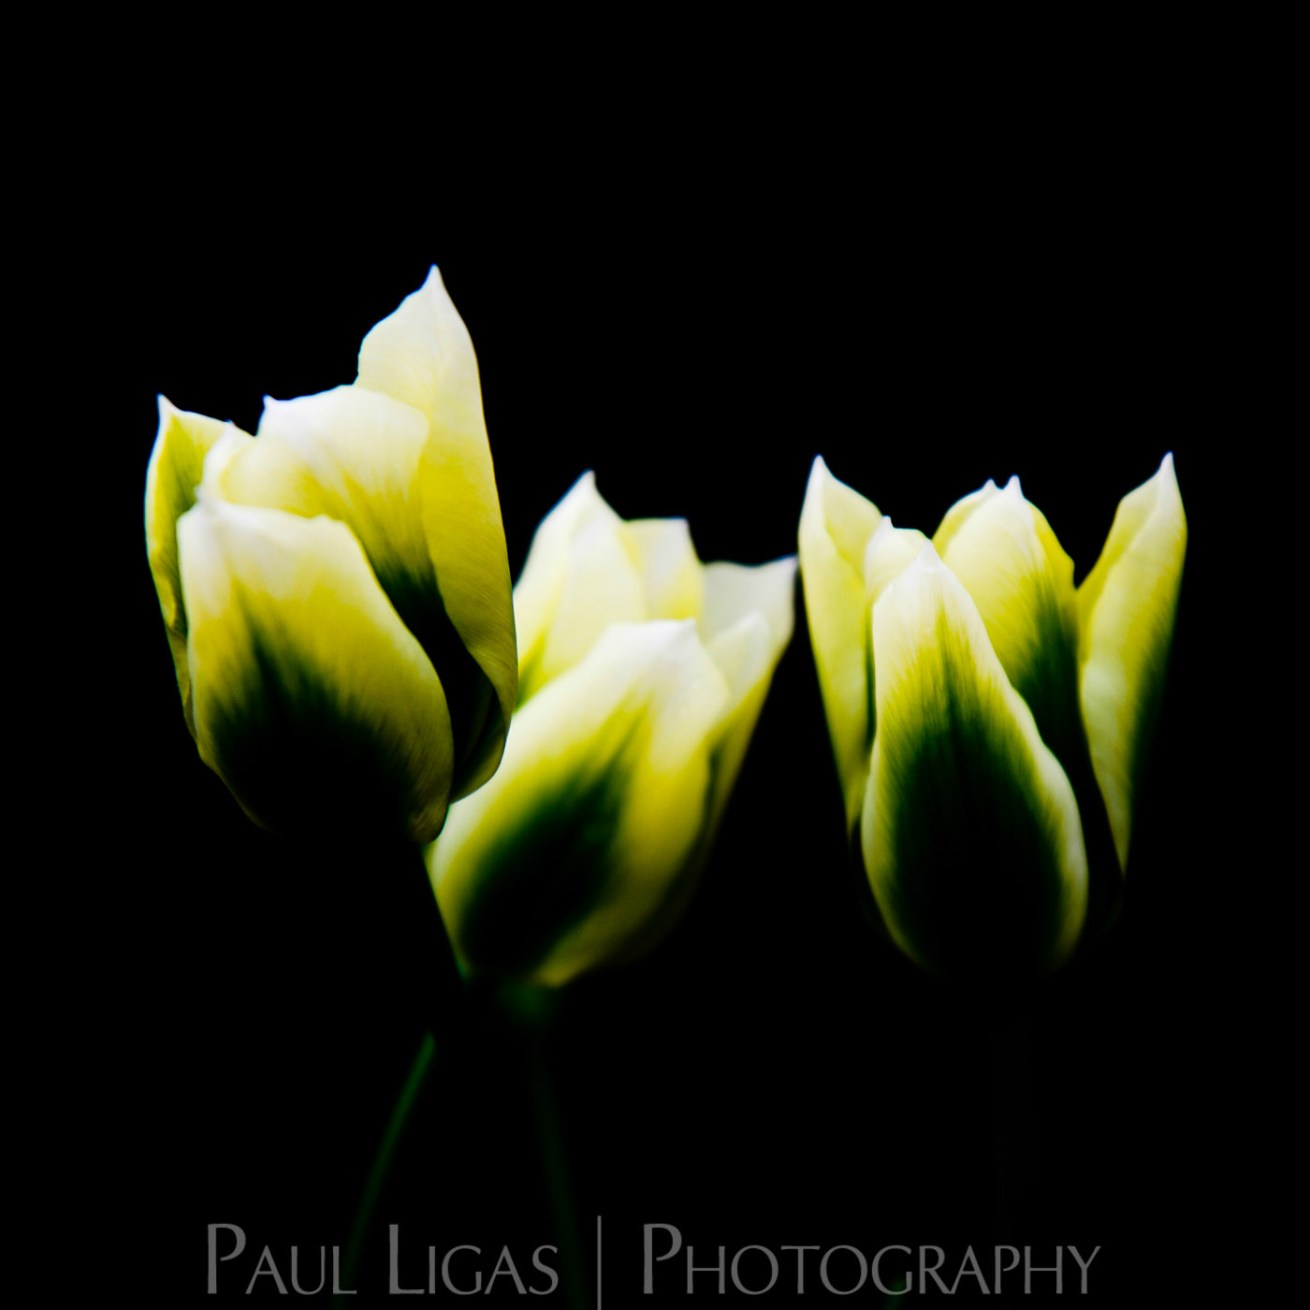 Mill House Farm aylesbury product photographer herefordshire photography flowers 0430